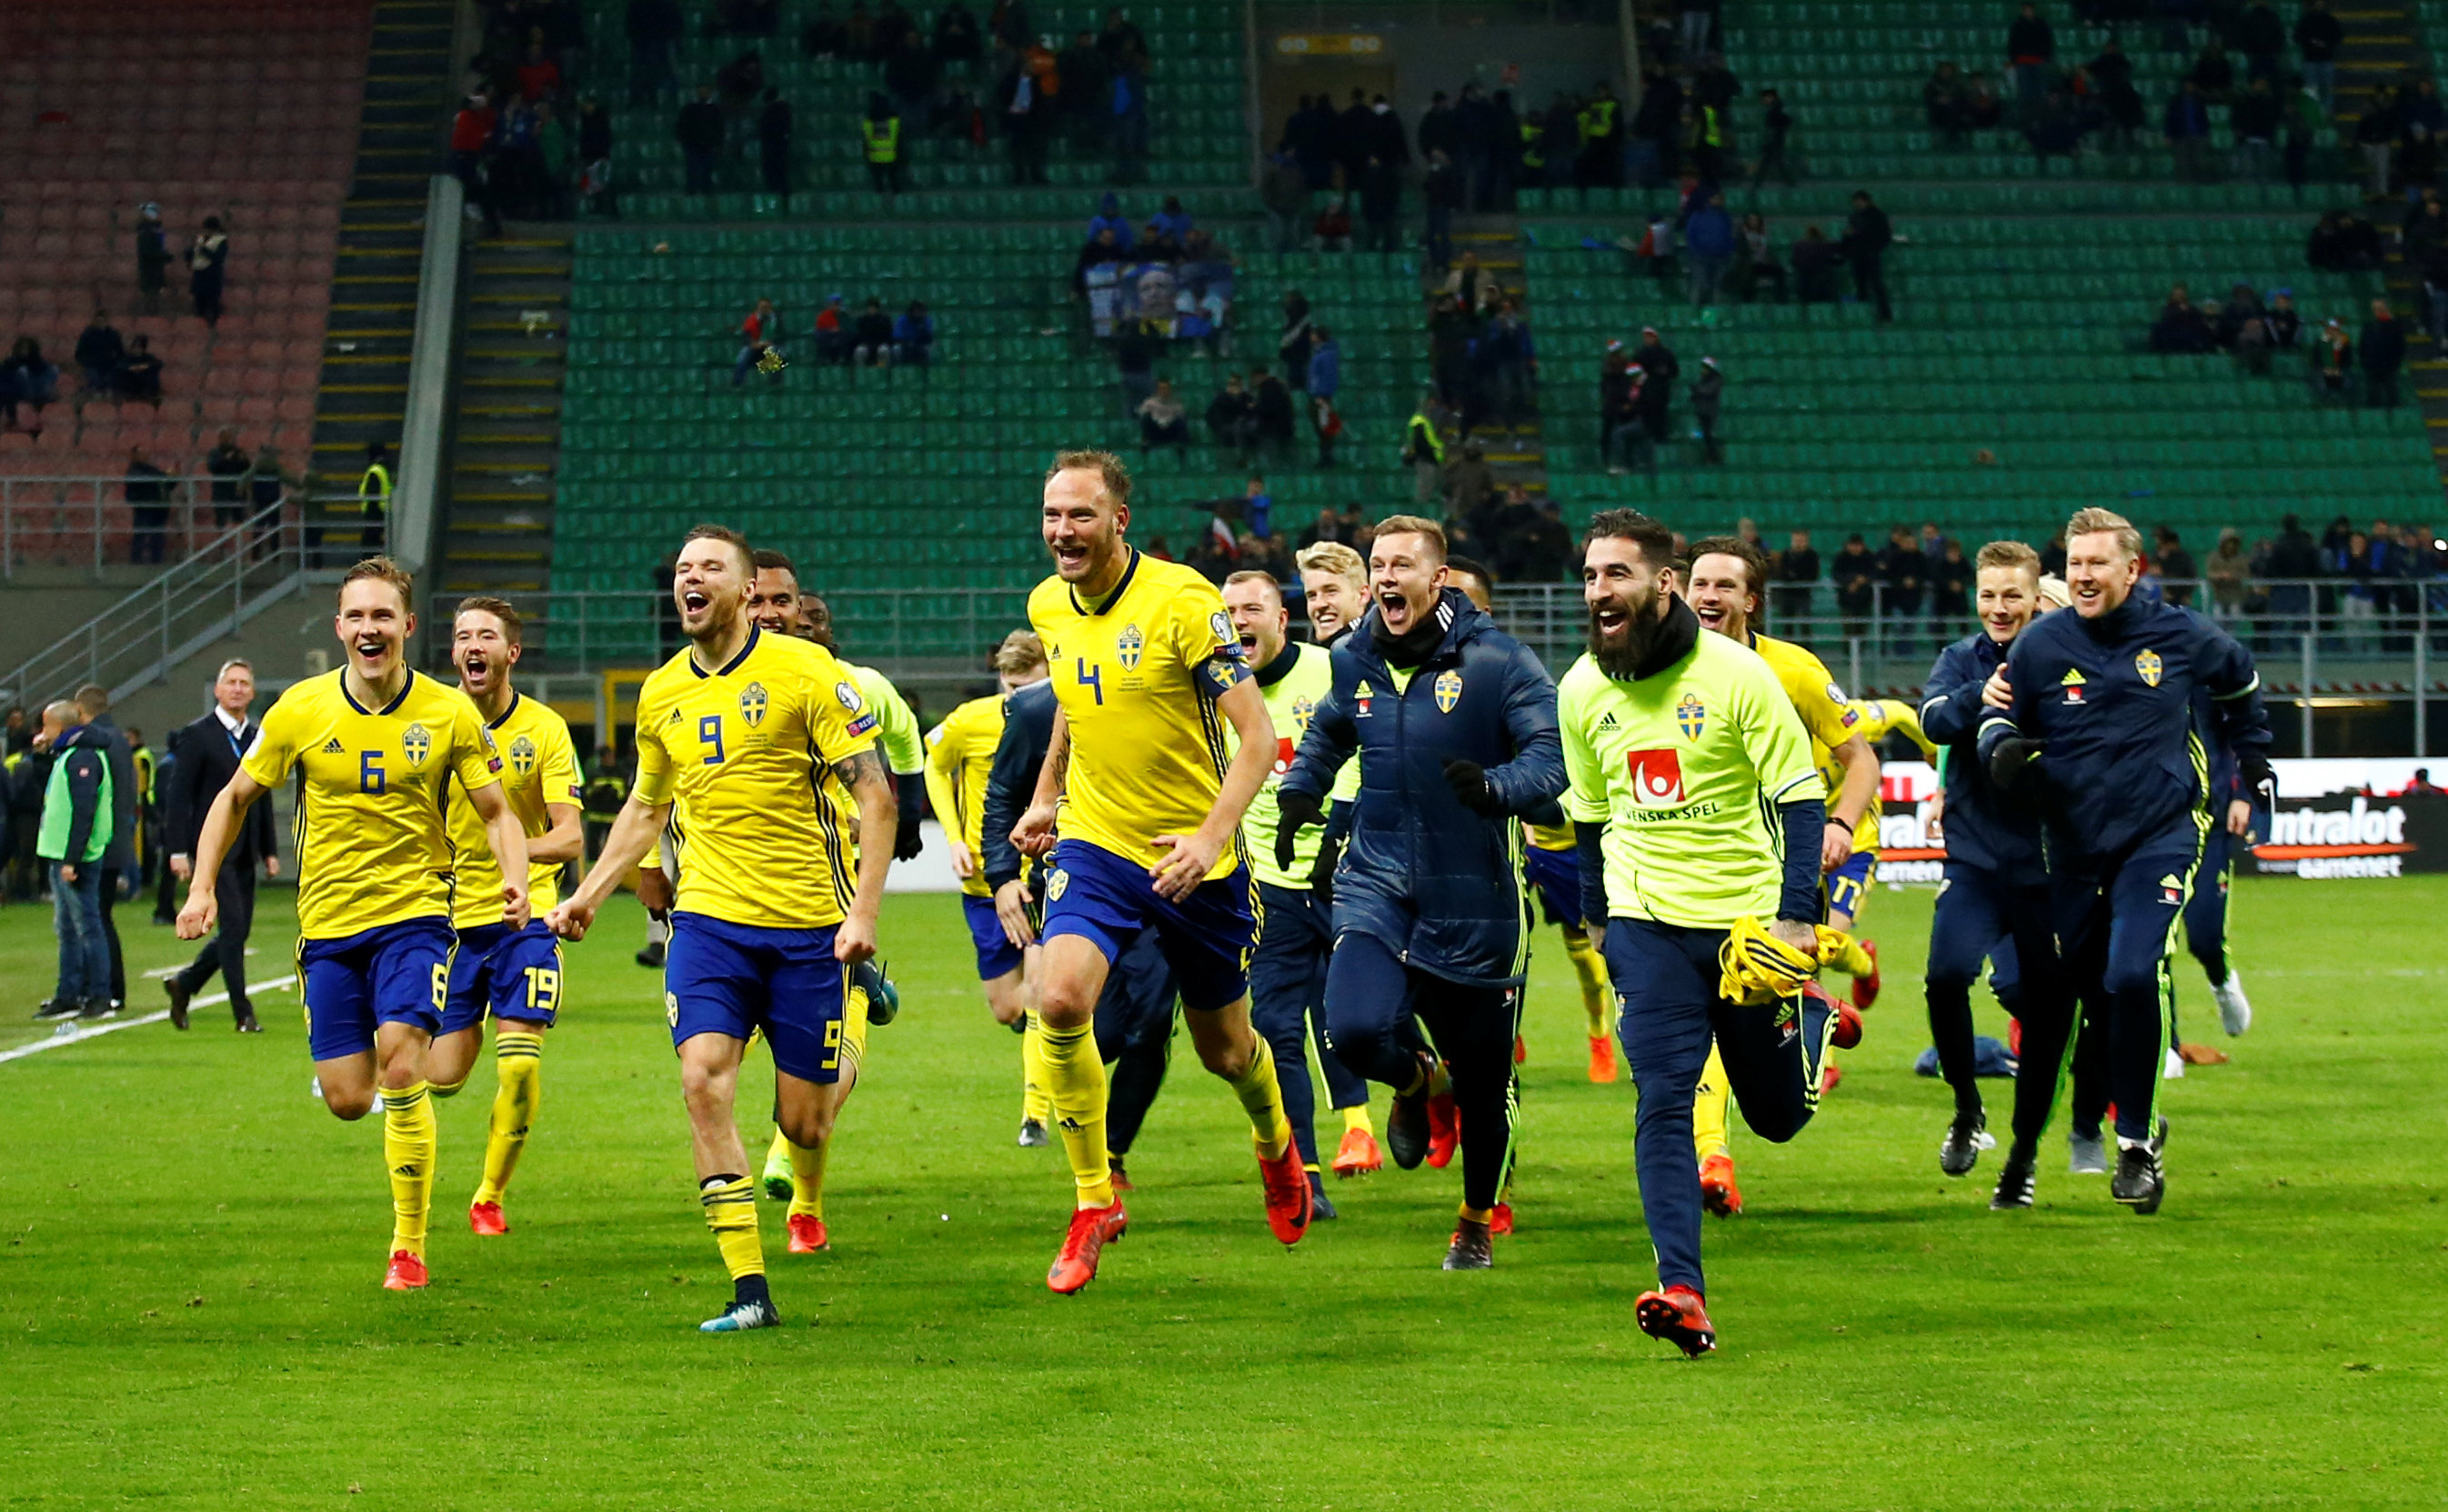 Football: Swedish joy erupts as World Cup spot secured in Italy